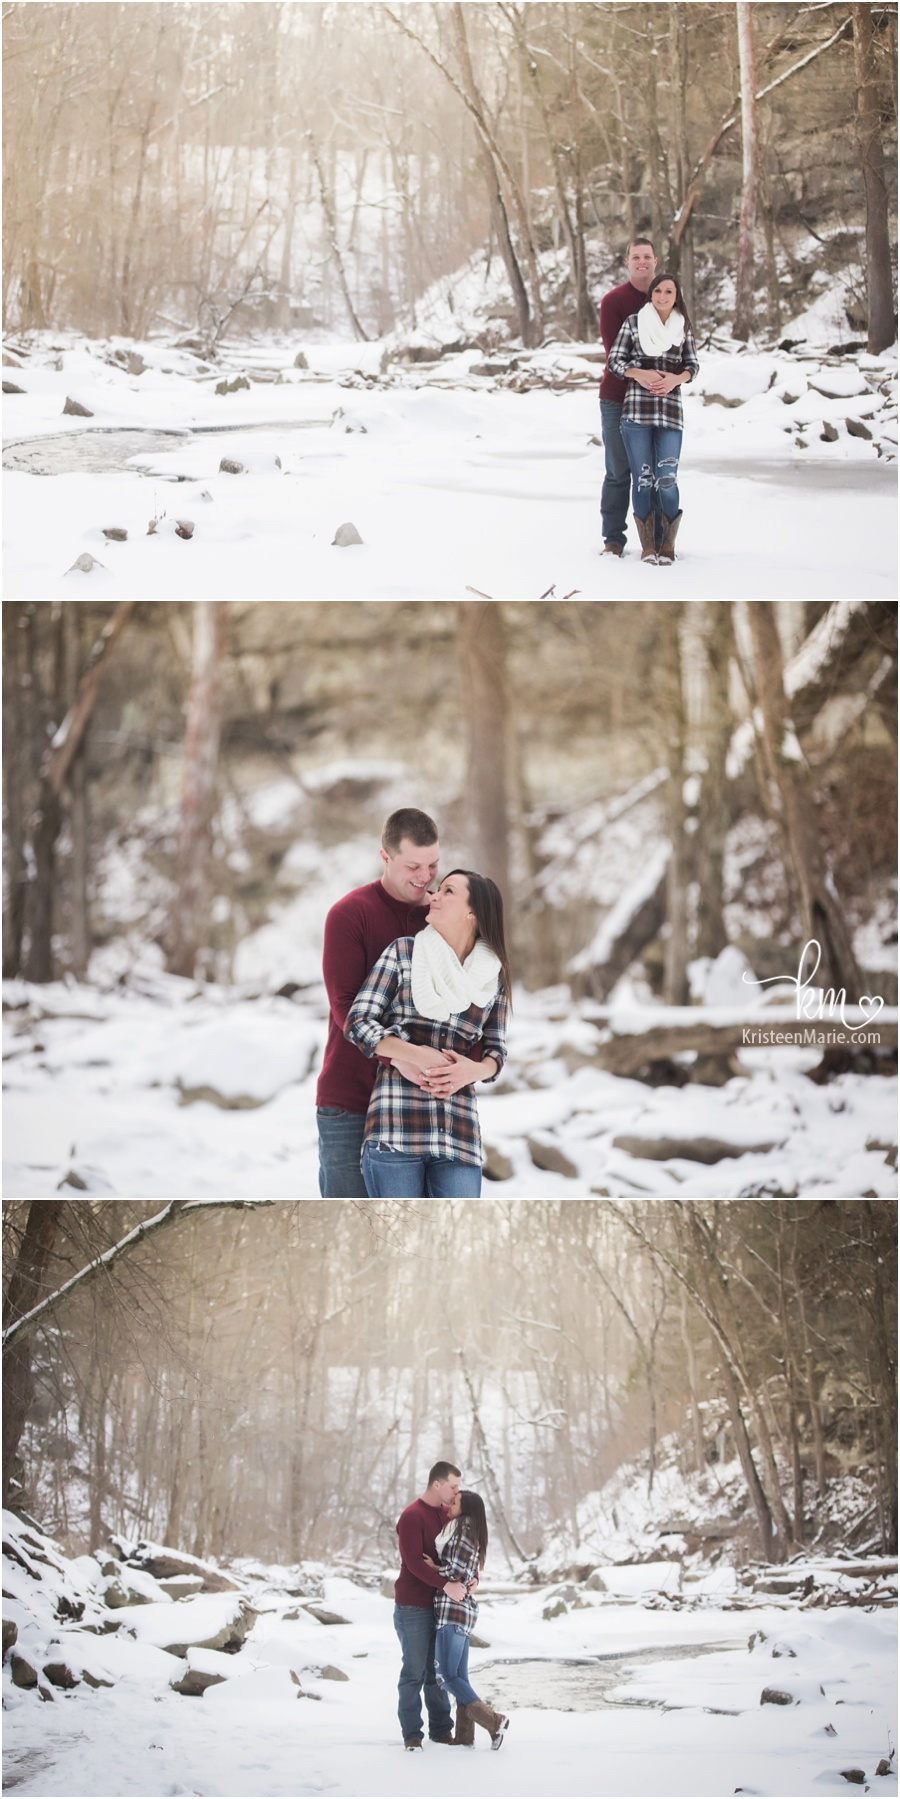 dreamy outdoor engagement photography photography